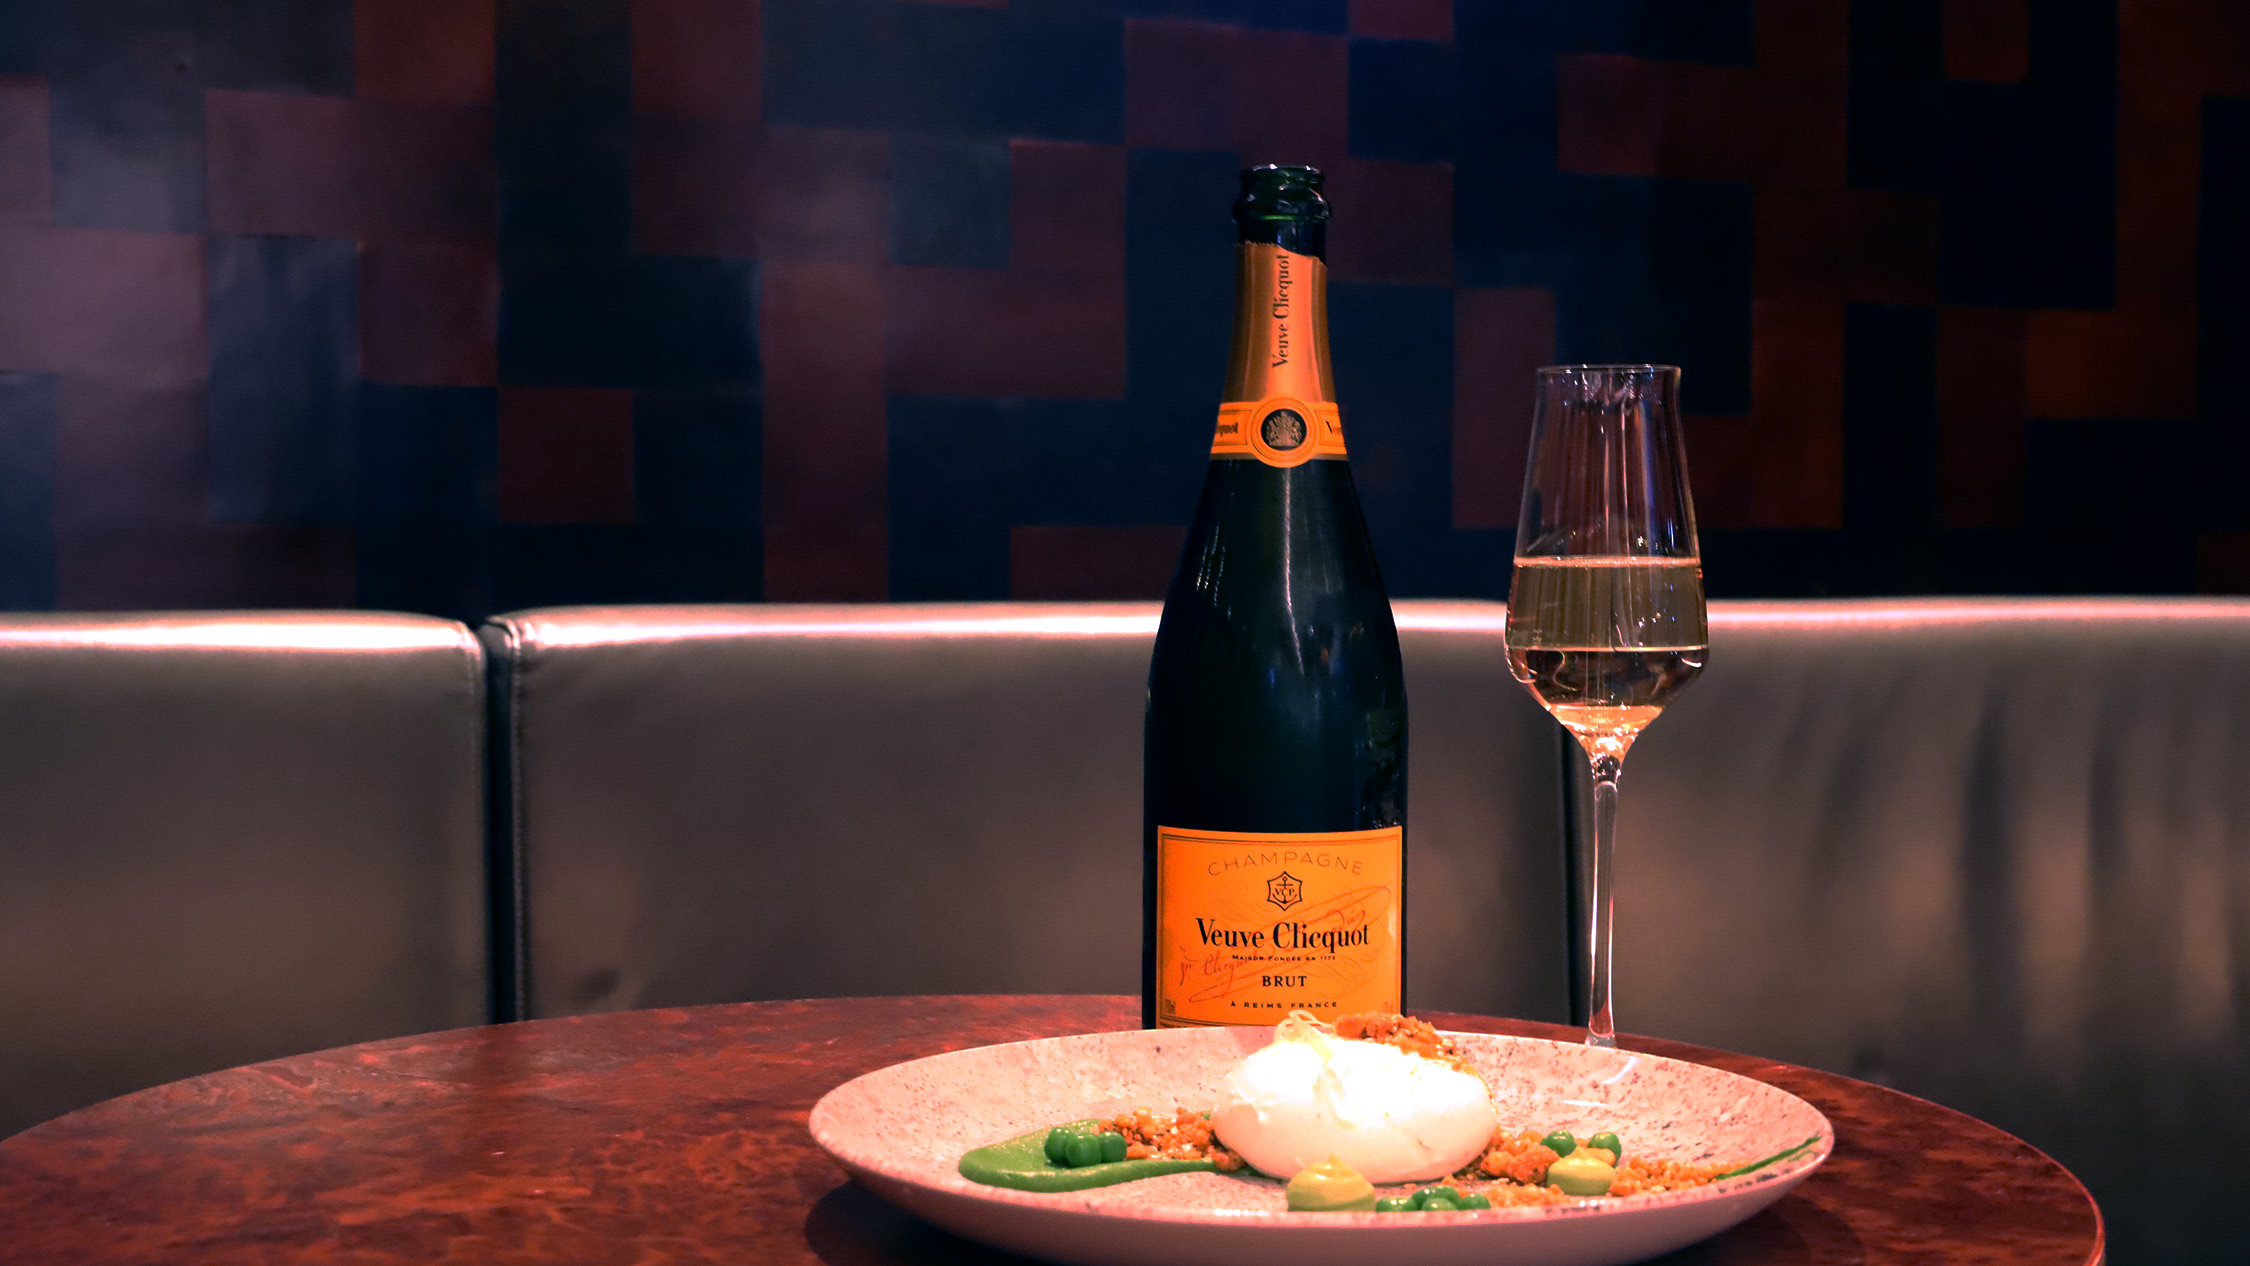 Champagne Bar pairs Veuve Clicqot with their new winter menu